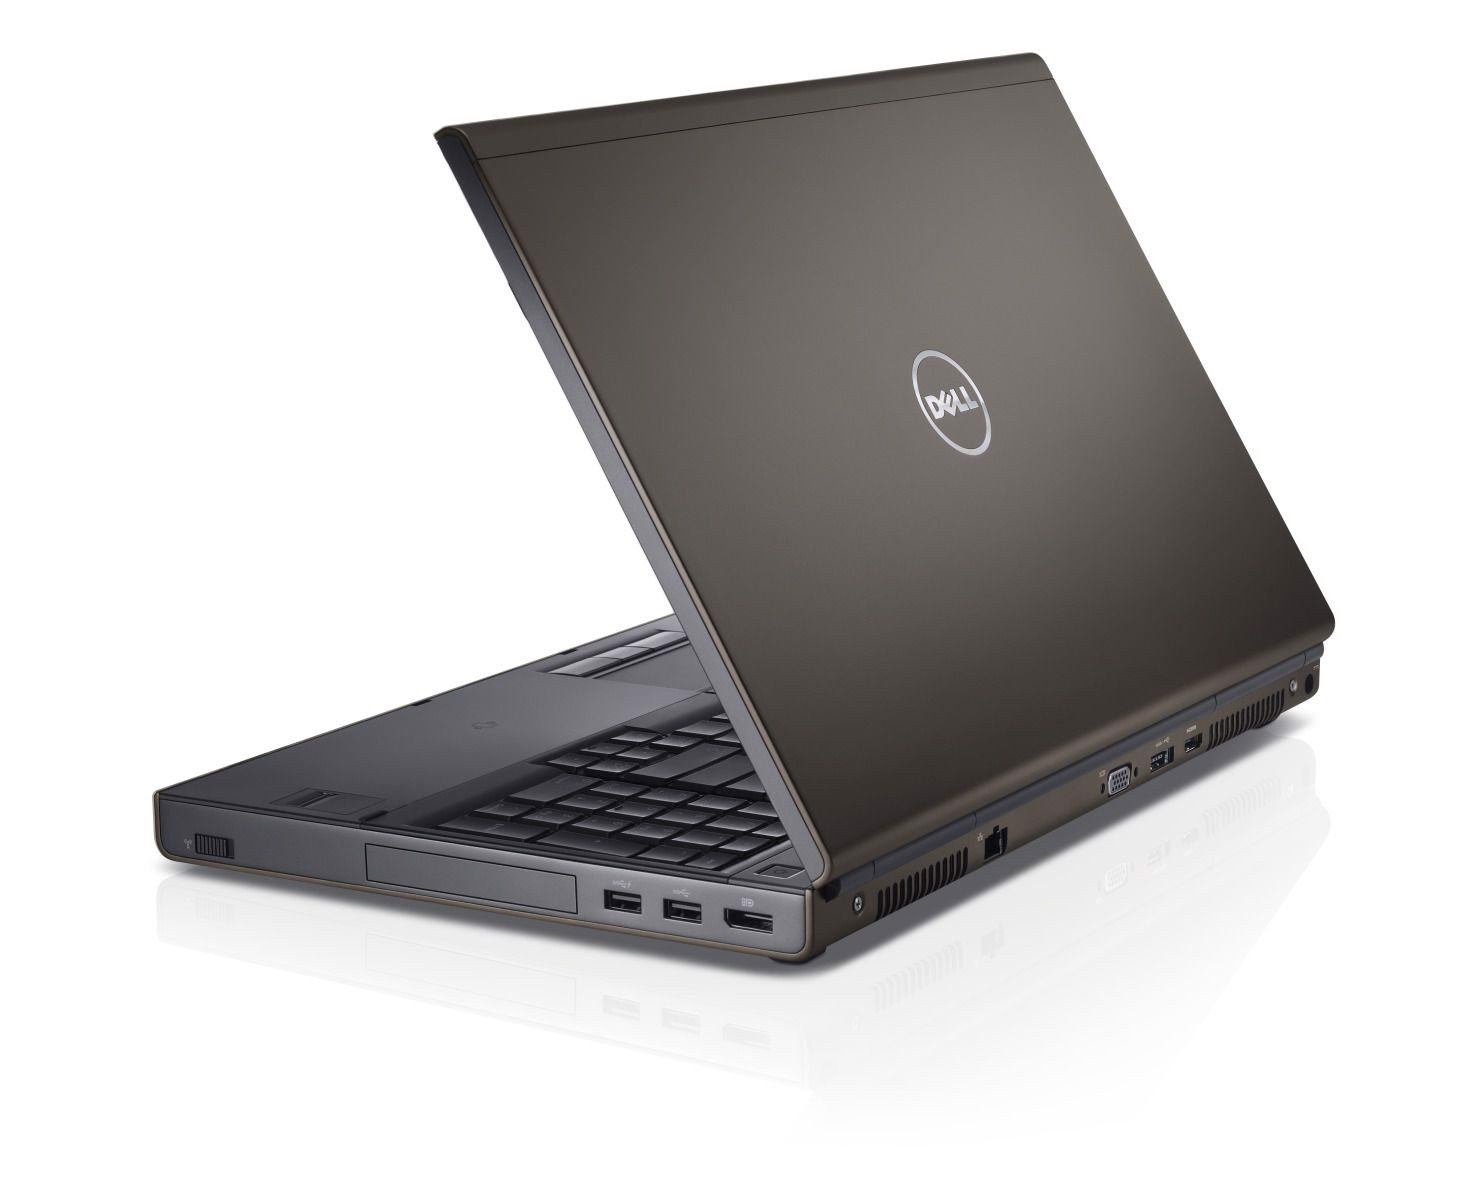 Dell Precision M6800 Core i7-4800MQ RAM 8GB HDD 500GB NVIDIA Quadro 3100M 4Gb